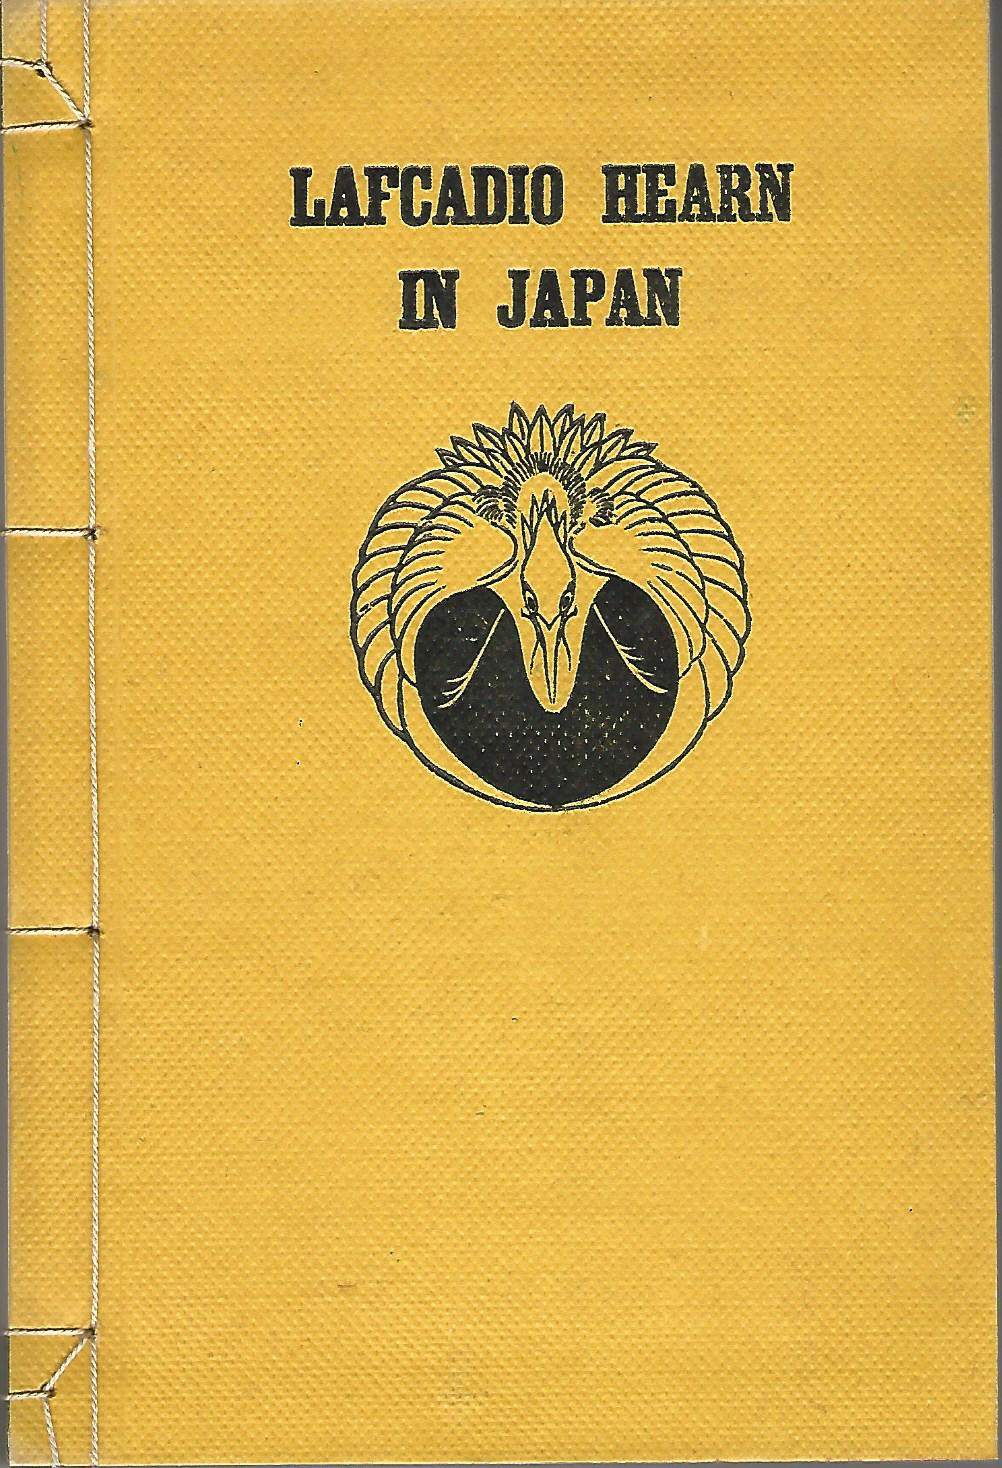 Image for Lafcadio Hearn in Japan.